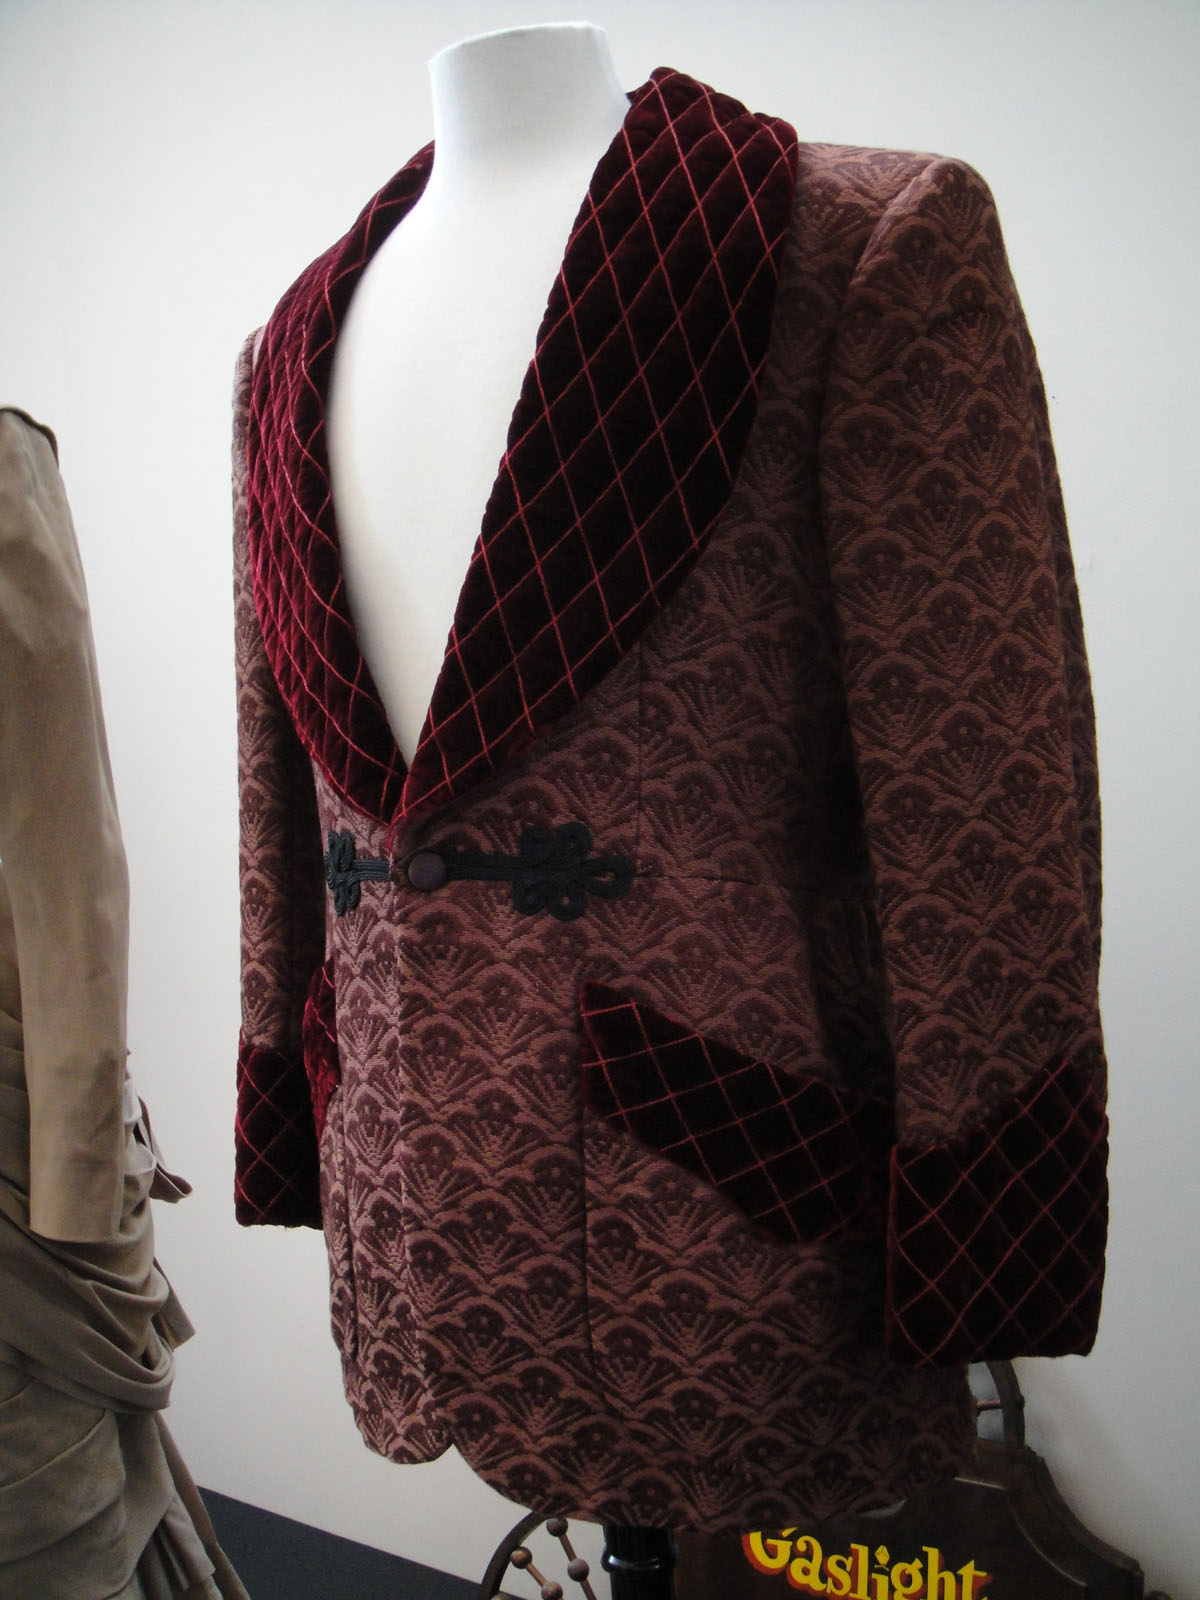 Smoking jacket Wikipedia